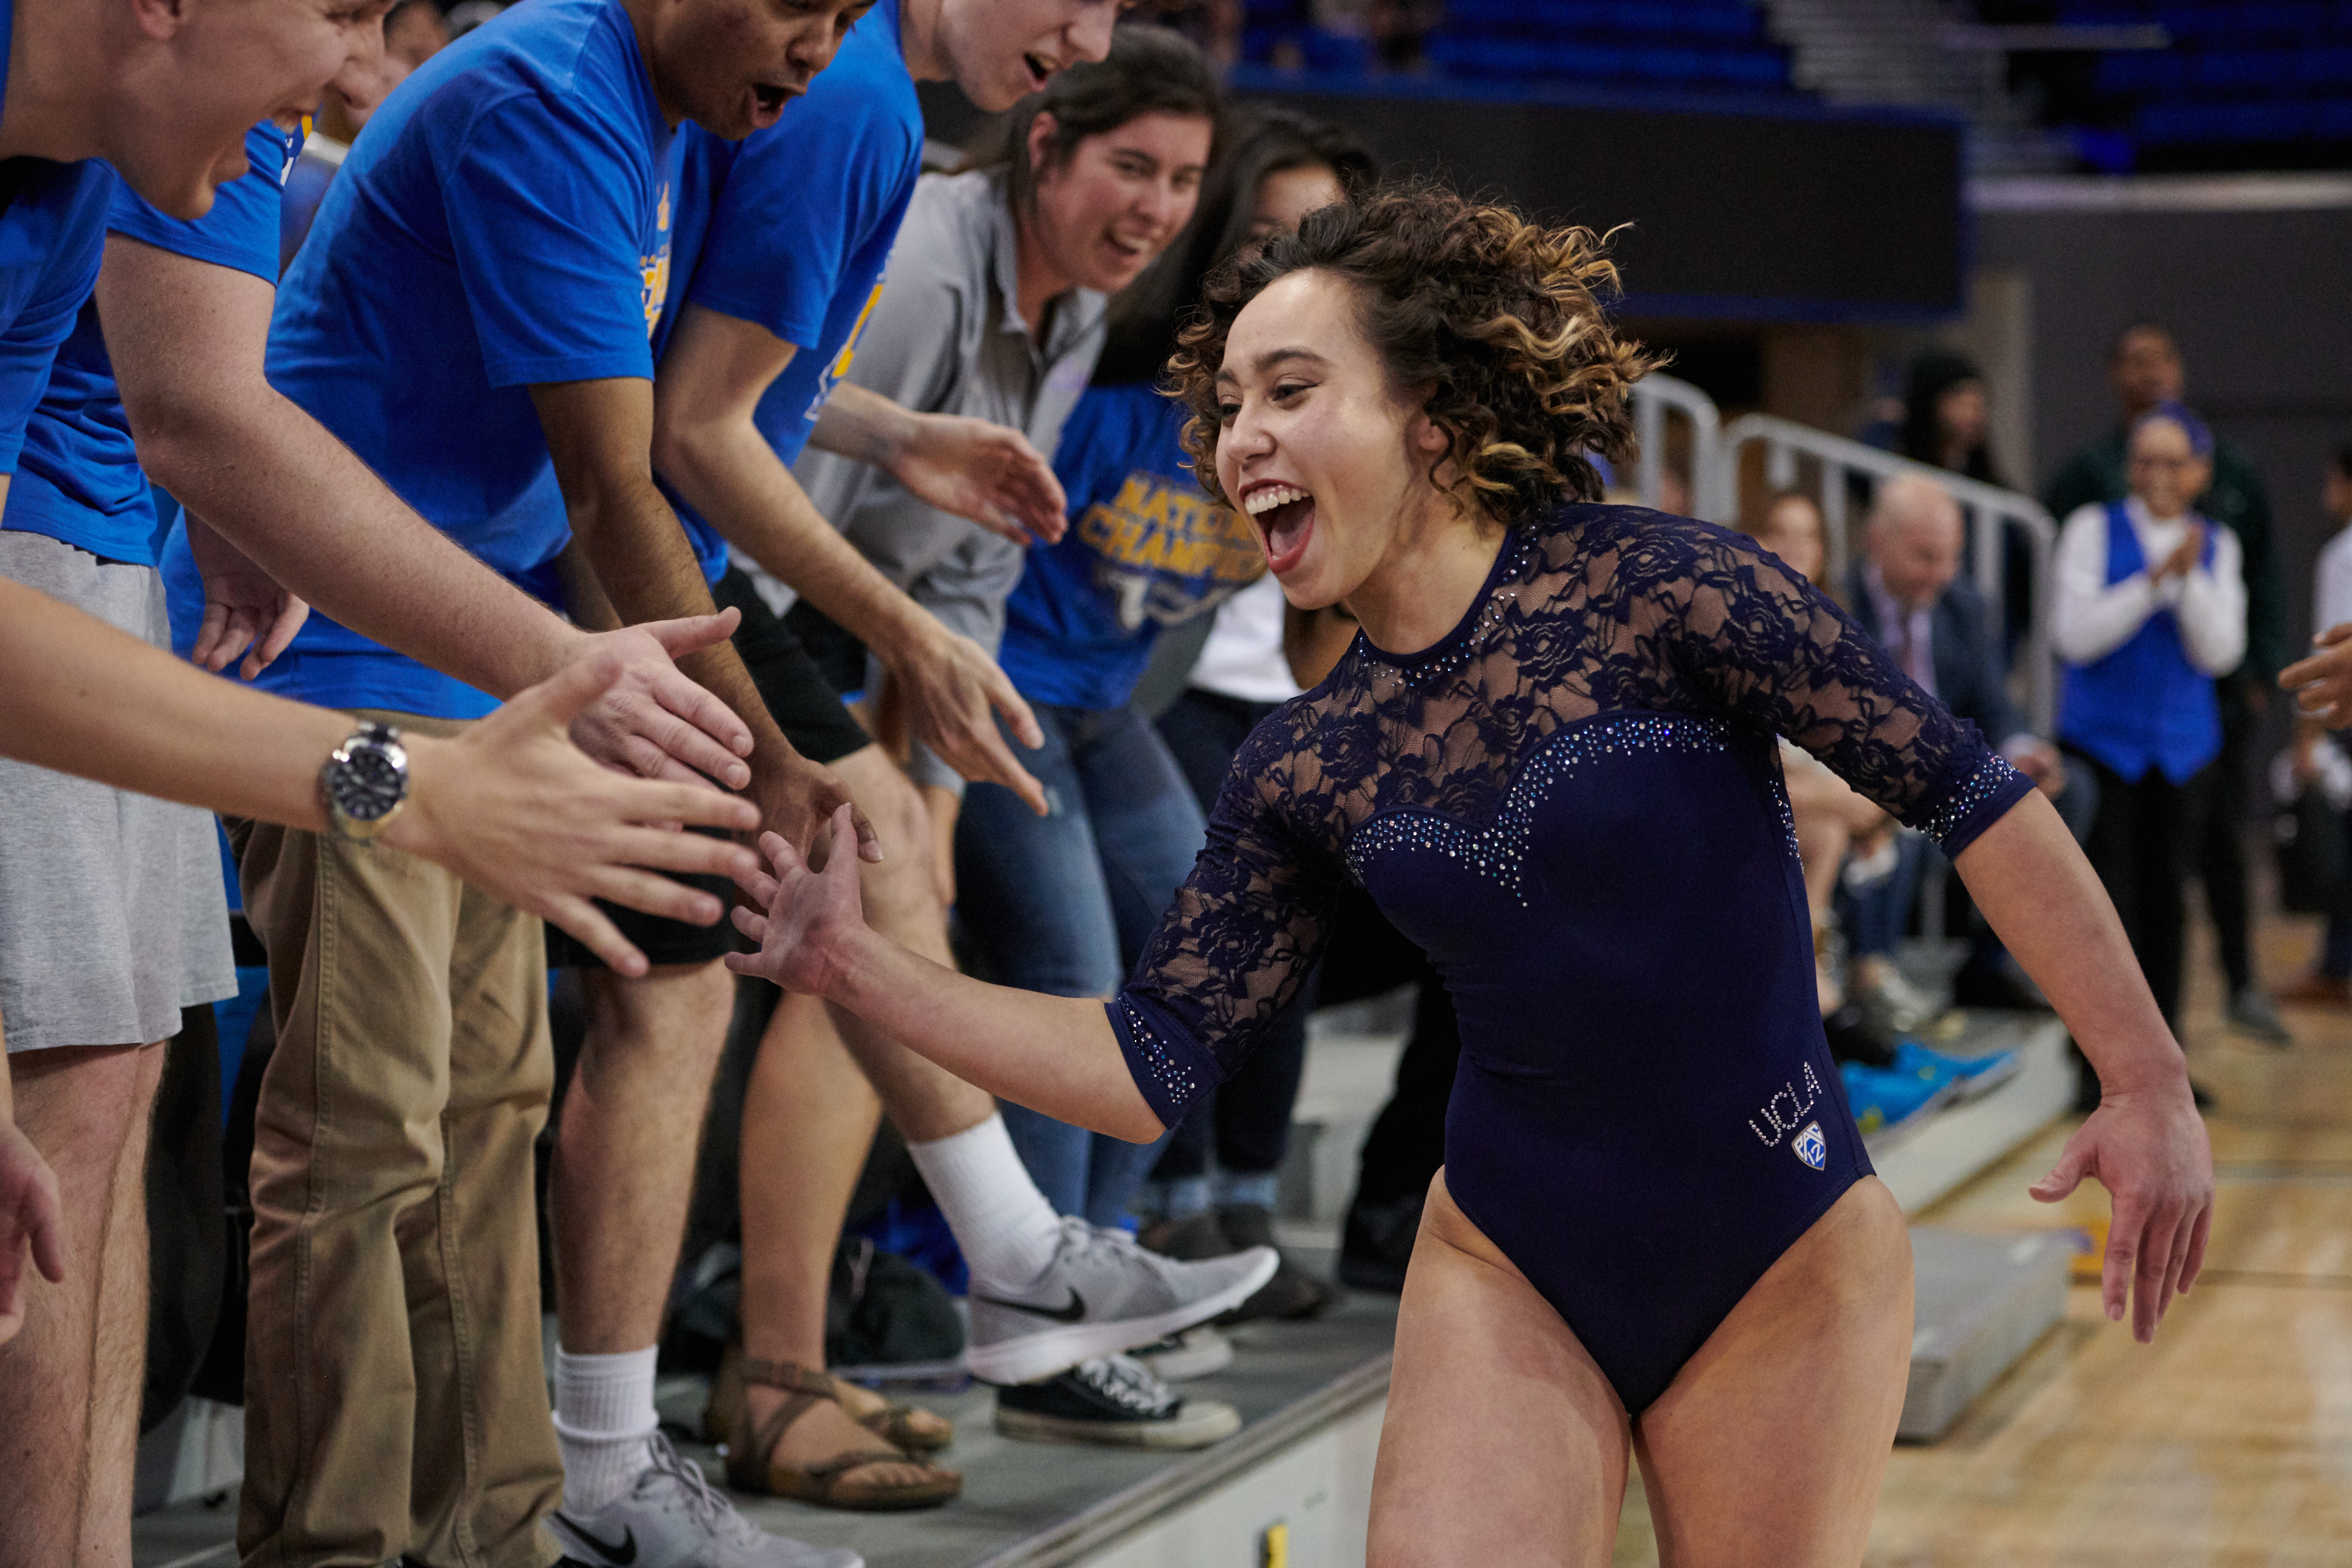 UCLA Athletics - 2019 UCLA Women's Gymnastics versus the Arizona State University Sun Devils. Pauley Pavilion, UCLA, Los Angeles, CA. January 21st, 2019 Copyright Don Liebig/ASUCLA 190121_GYM_1986.NEF